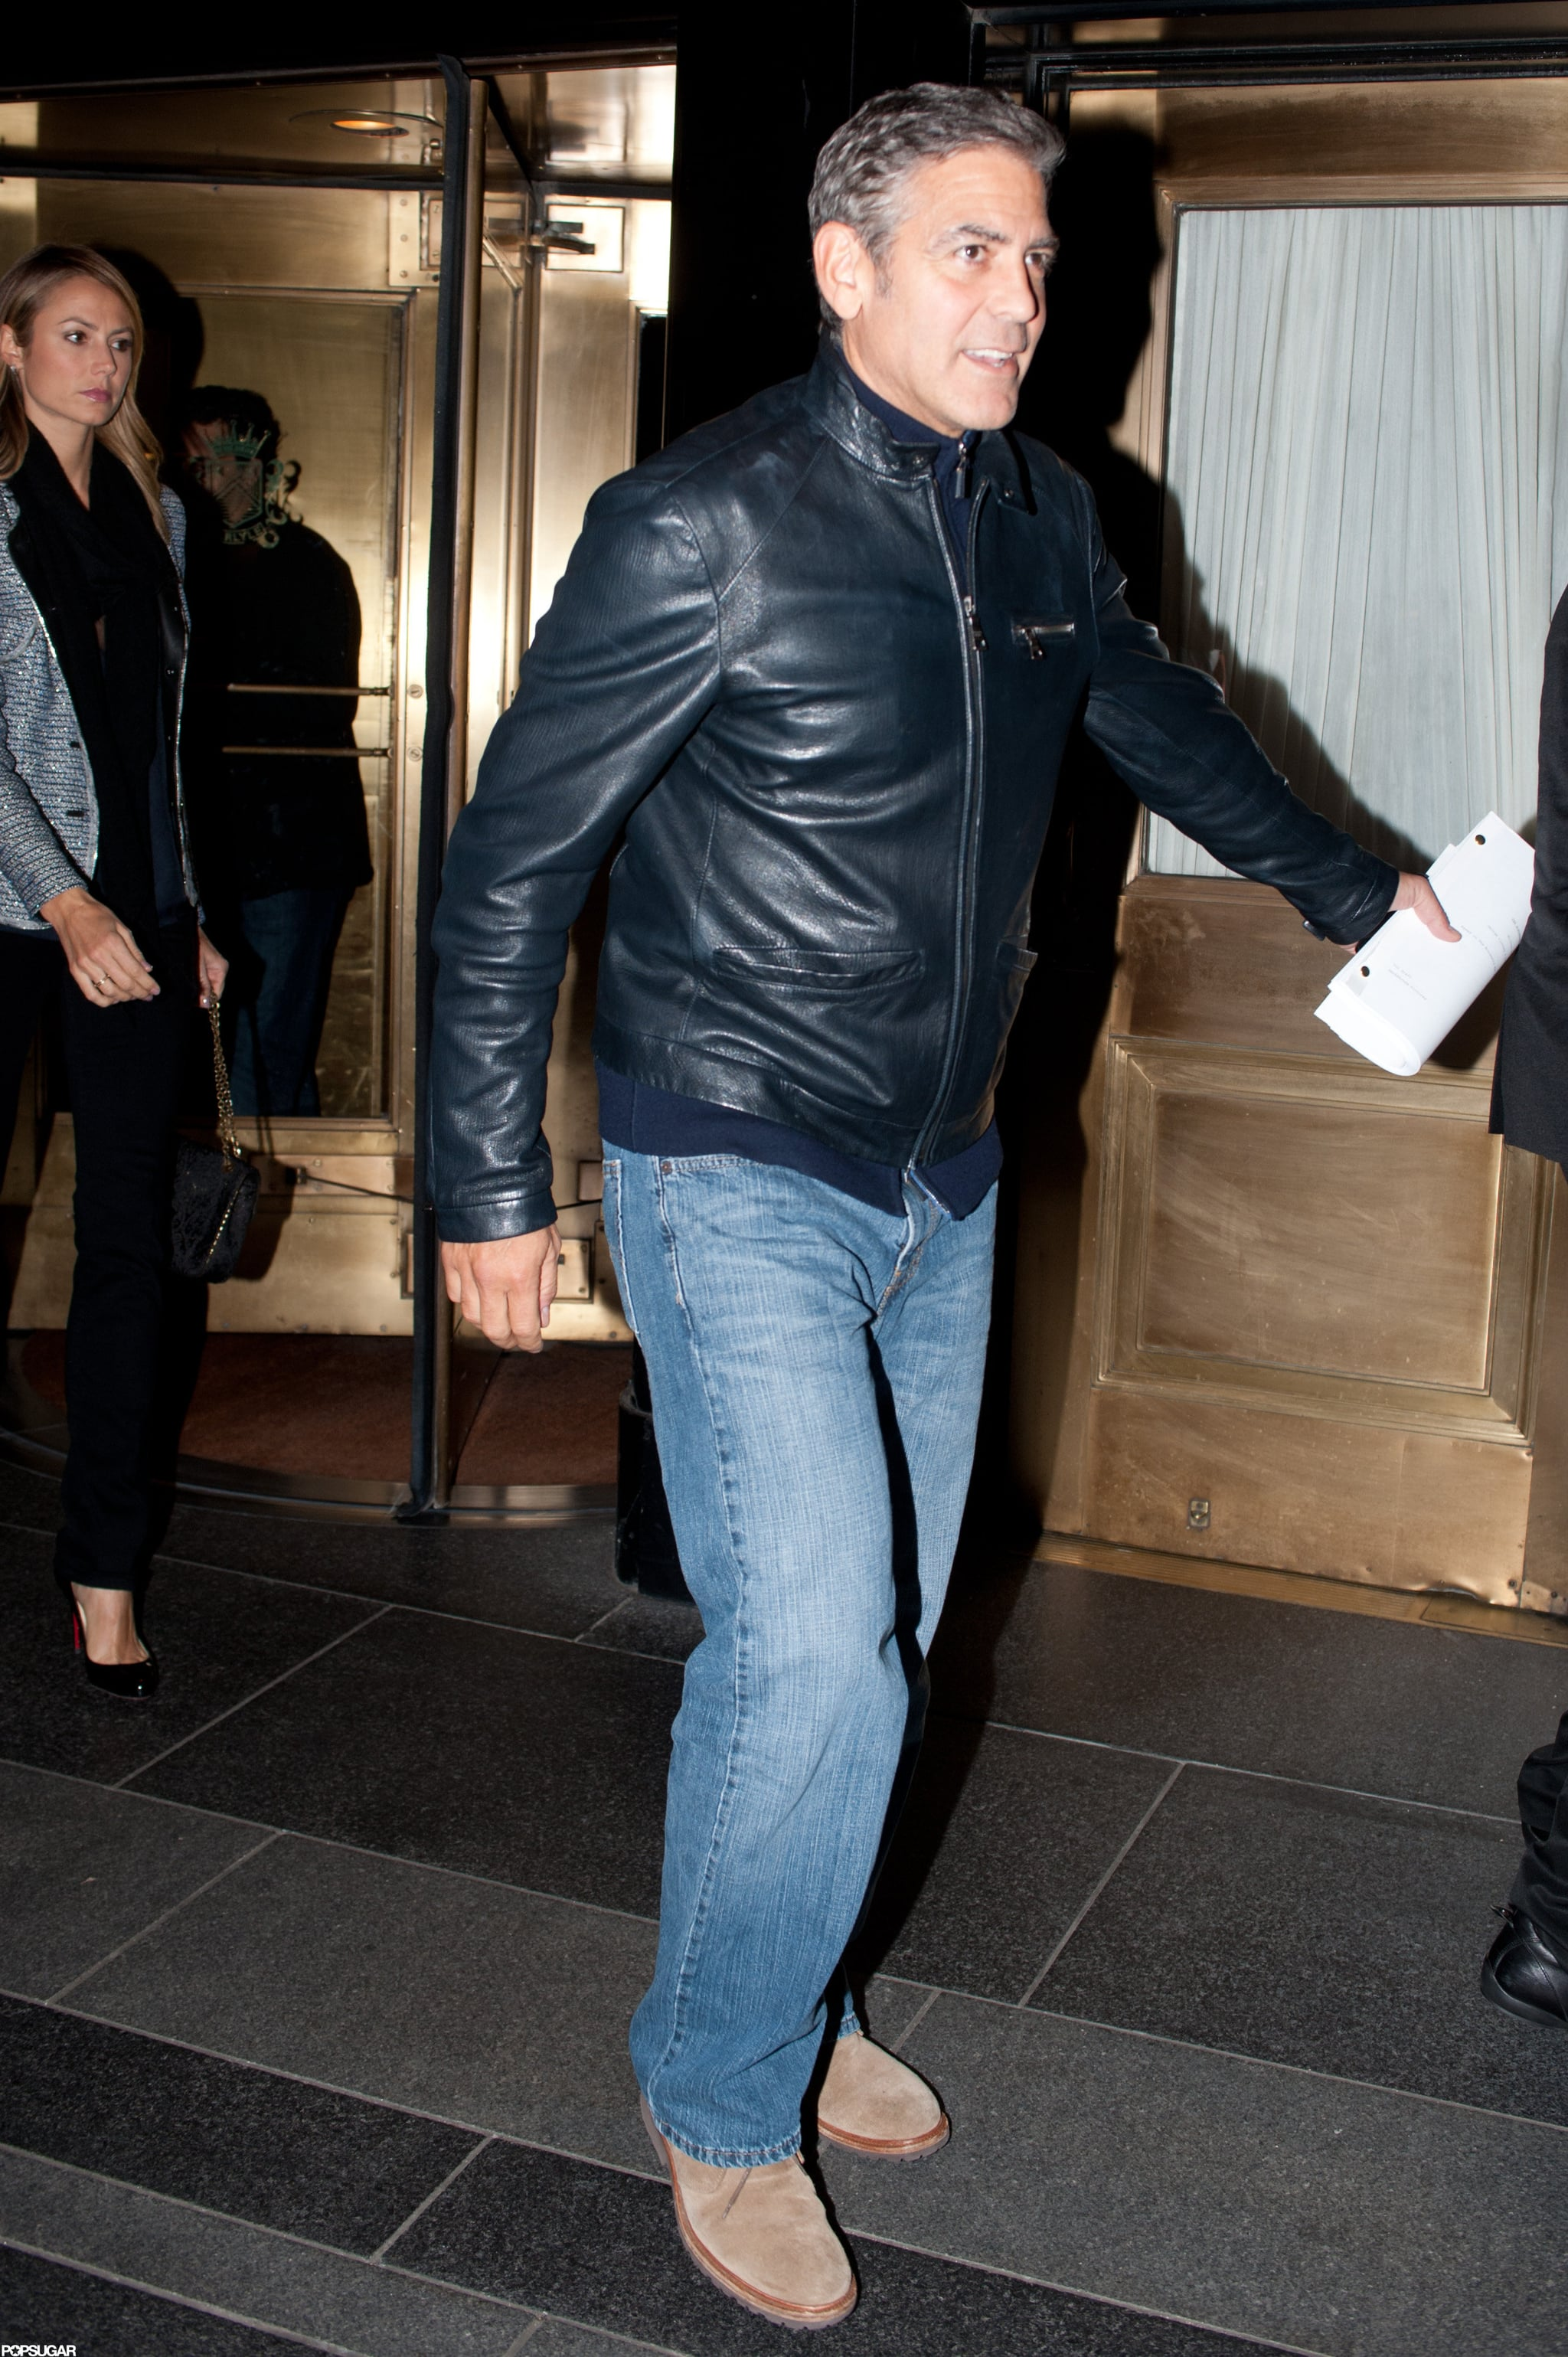 George Clooney had an evening out with Stacey Keibler and pals in NYC.